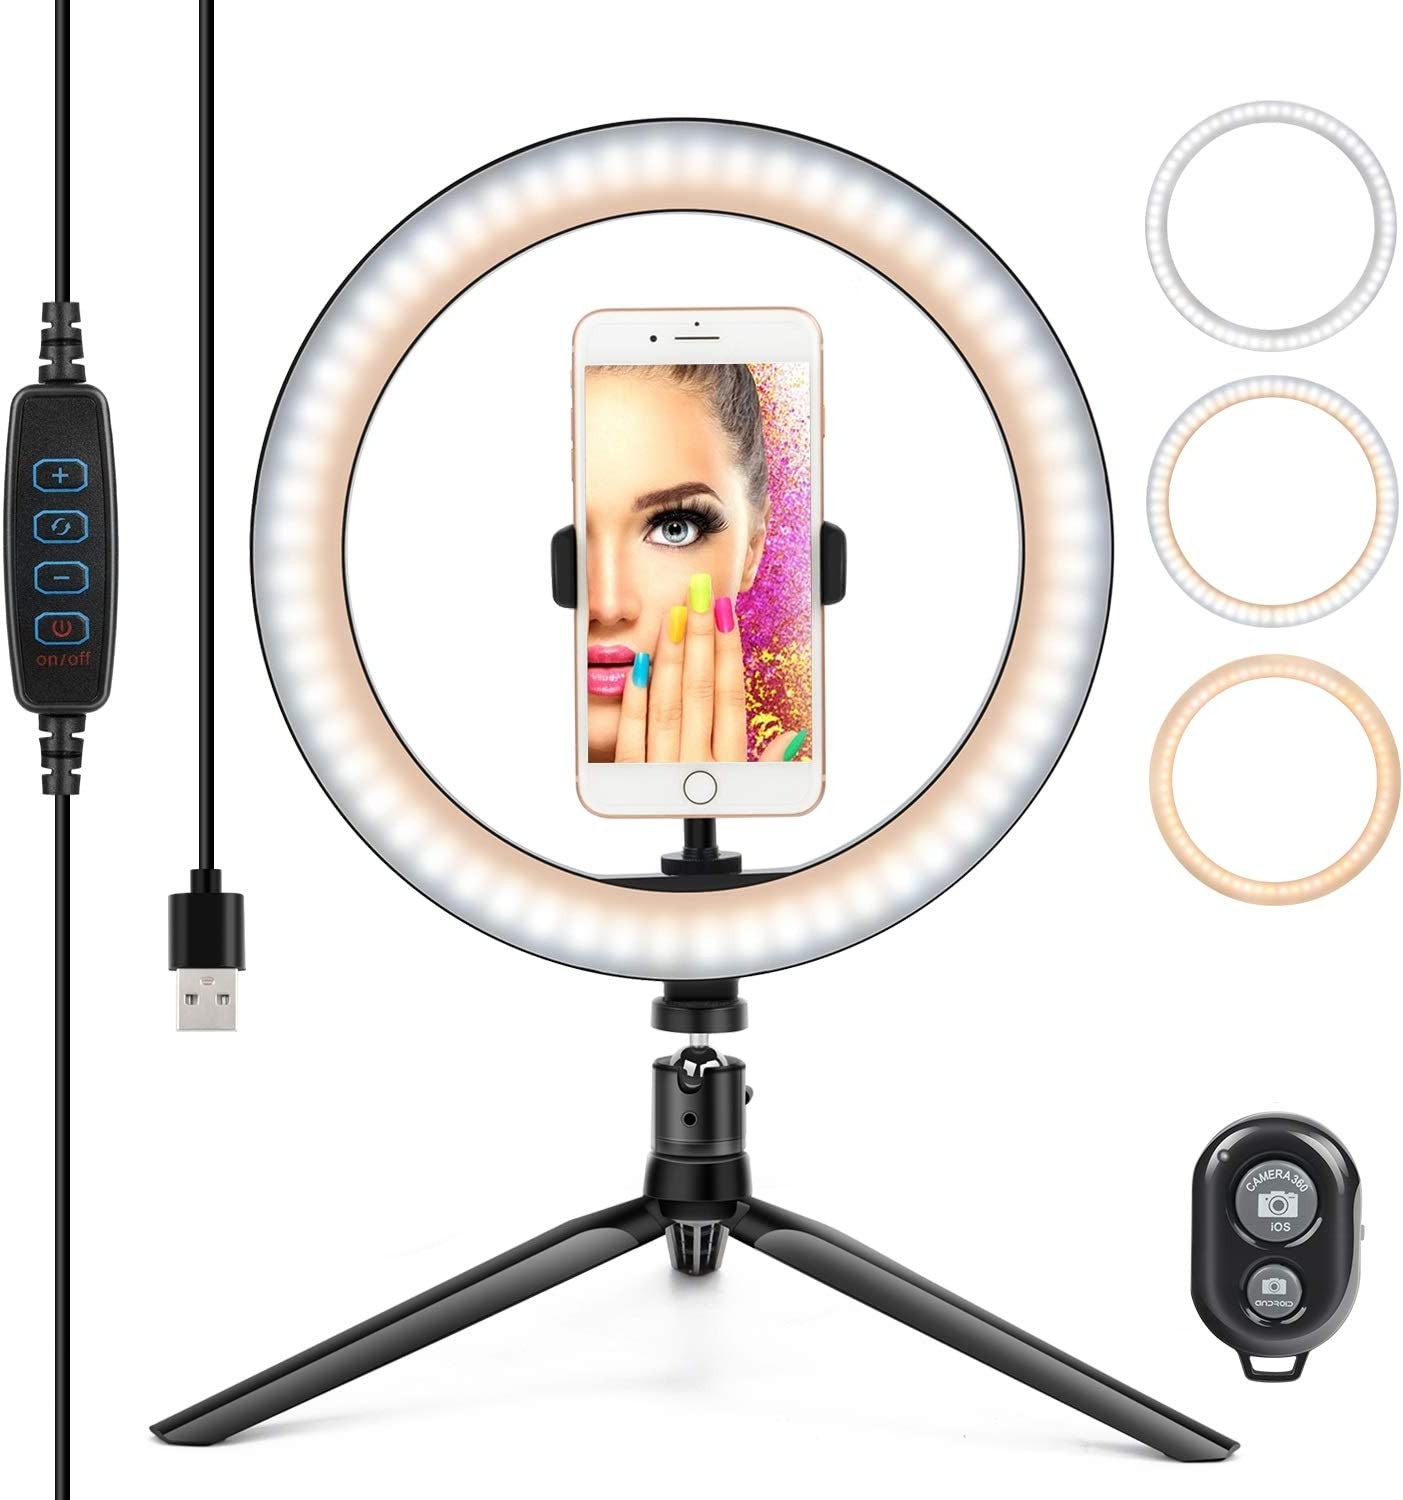 """10"""" Ring Light LED Desktop Selfie Ring Light USB LED Desk Camera Ringlight 3 Colors Light with Tripod Stand iPhone Cell Phone Holder and Remote Control for Photography Makeup Live Streaming (Natural): Camera & Photo"""